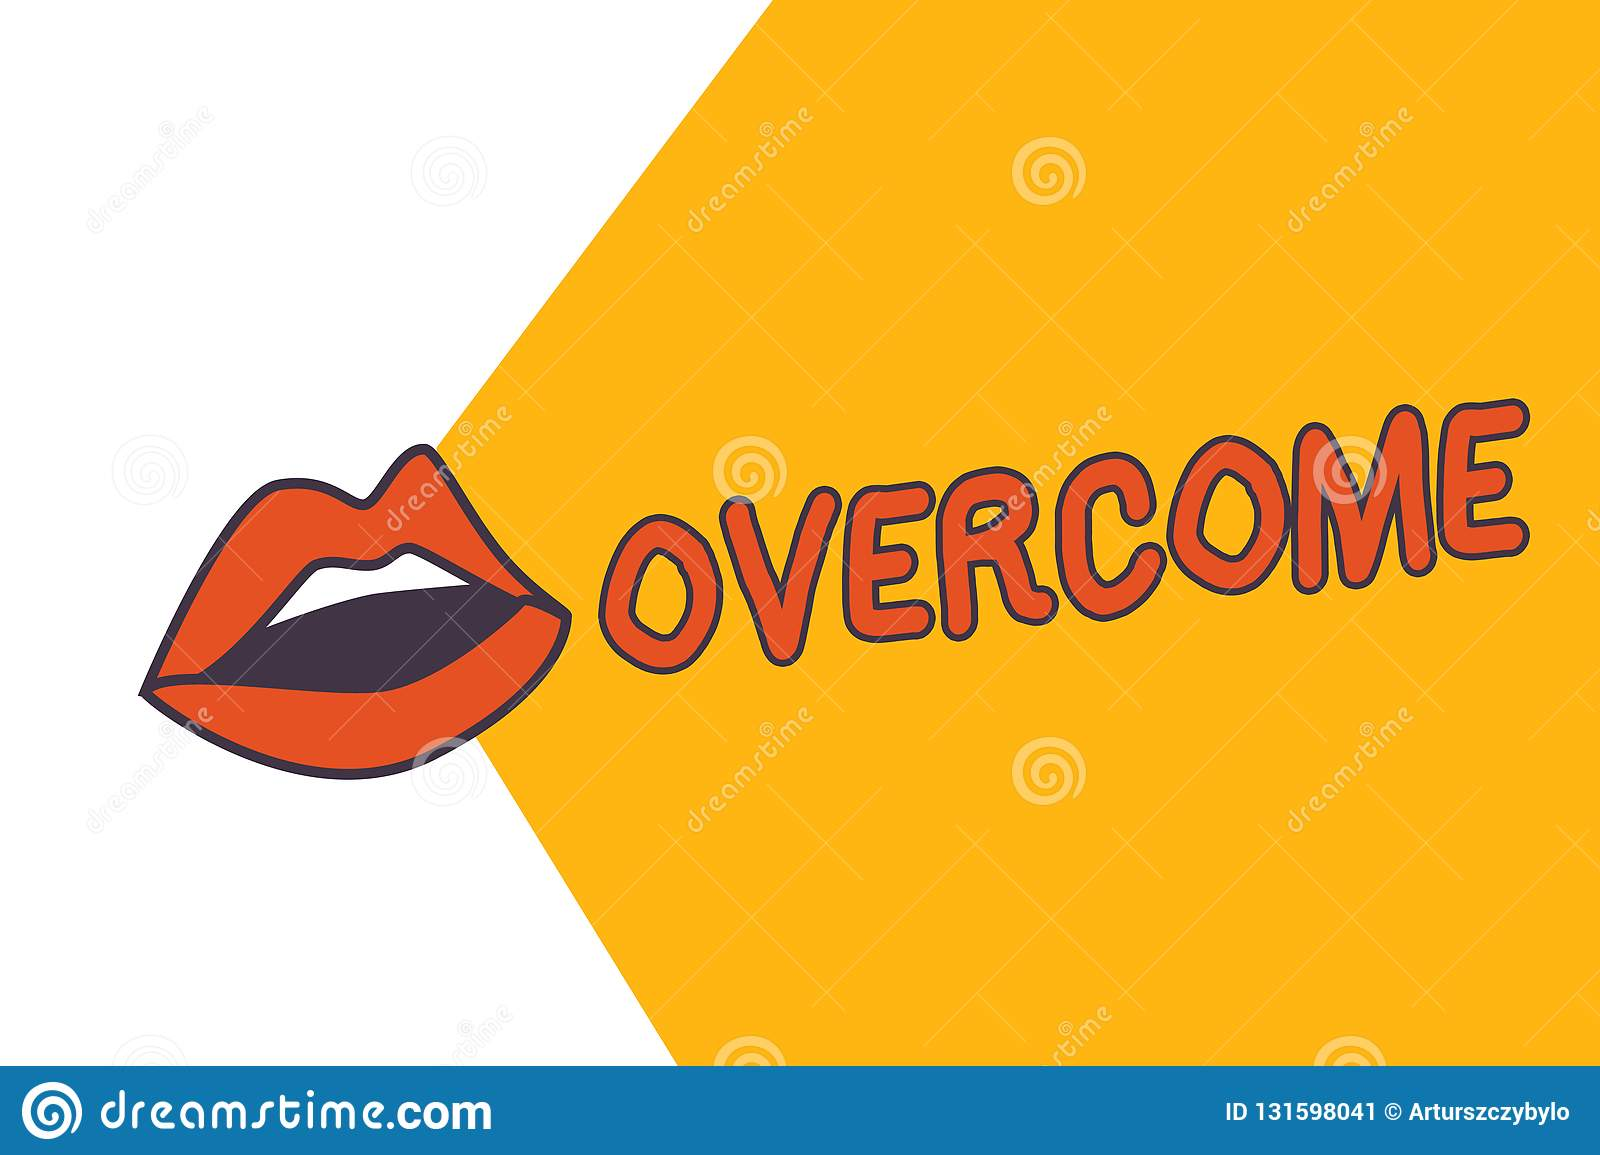 Writing note showing Overcome. Business photo showcasing succeed in dealing with problem or difficulty defeat opponent